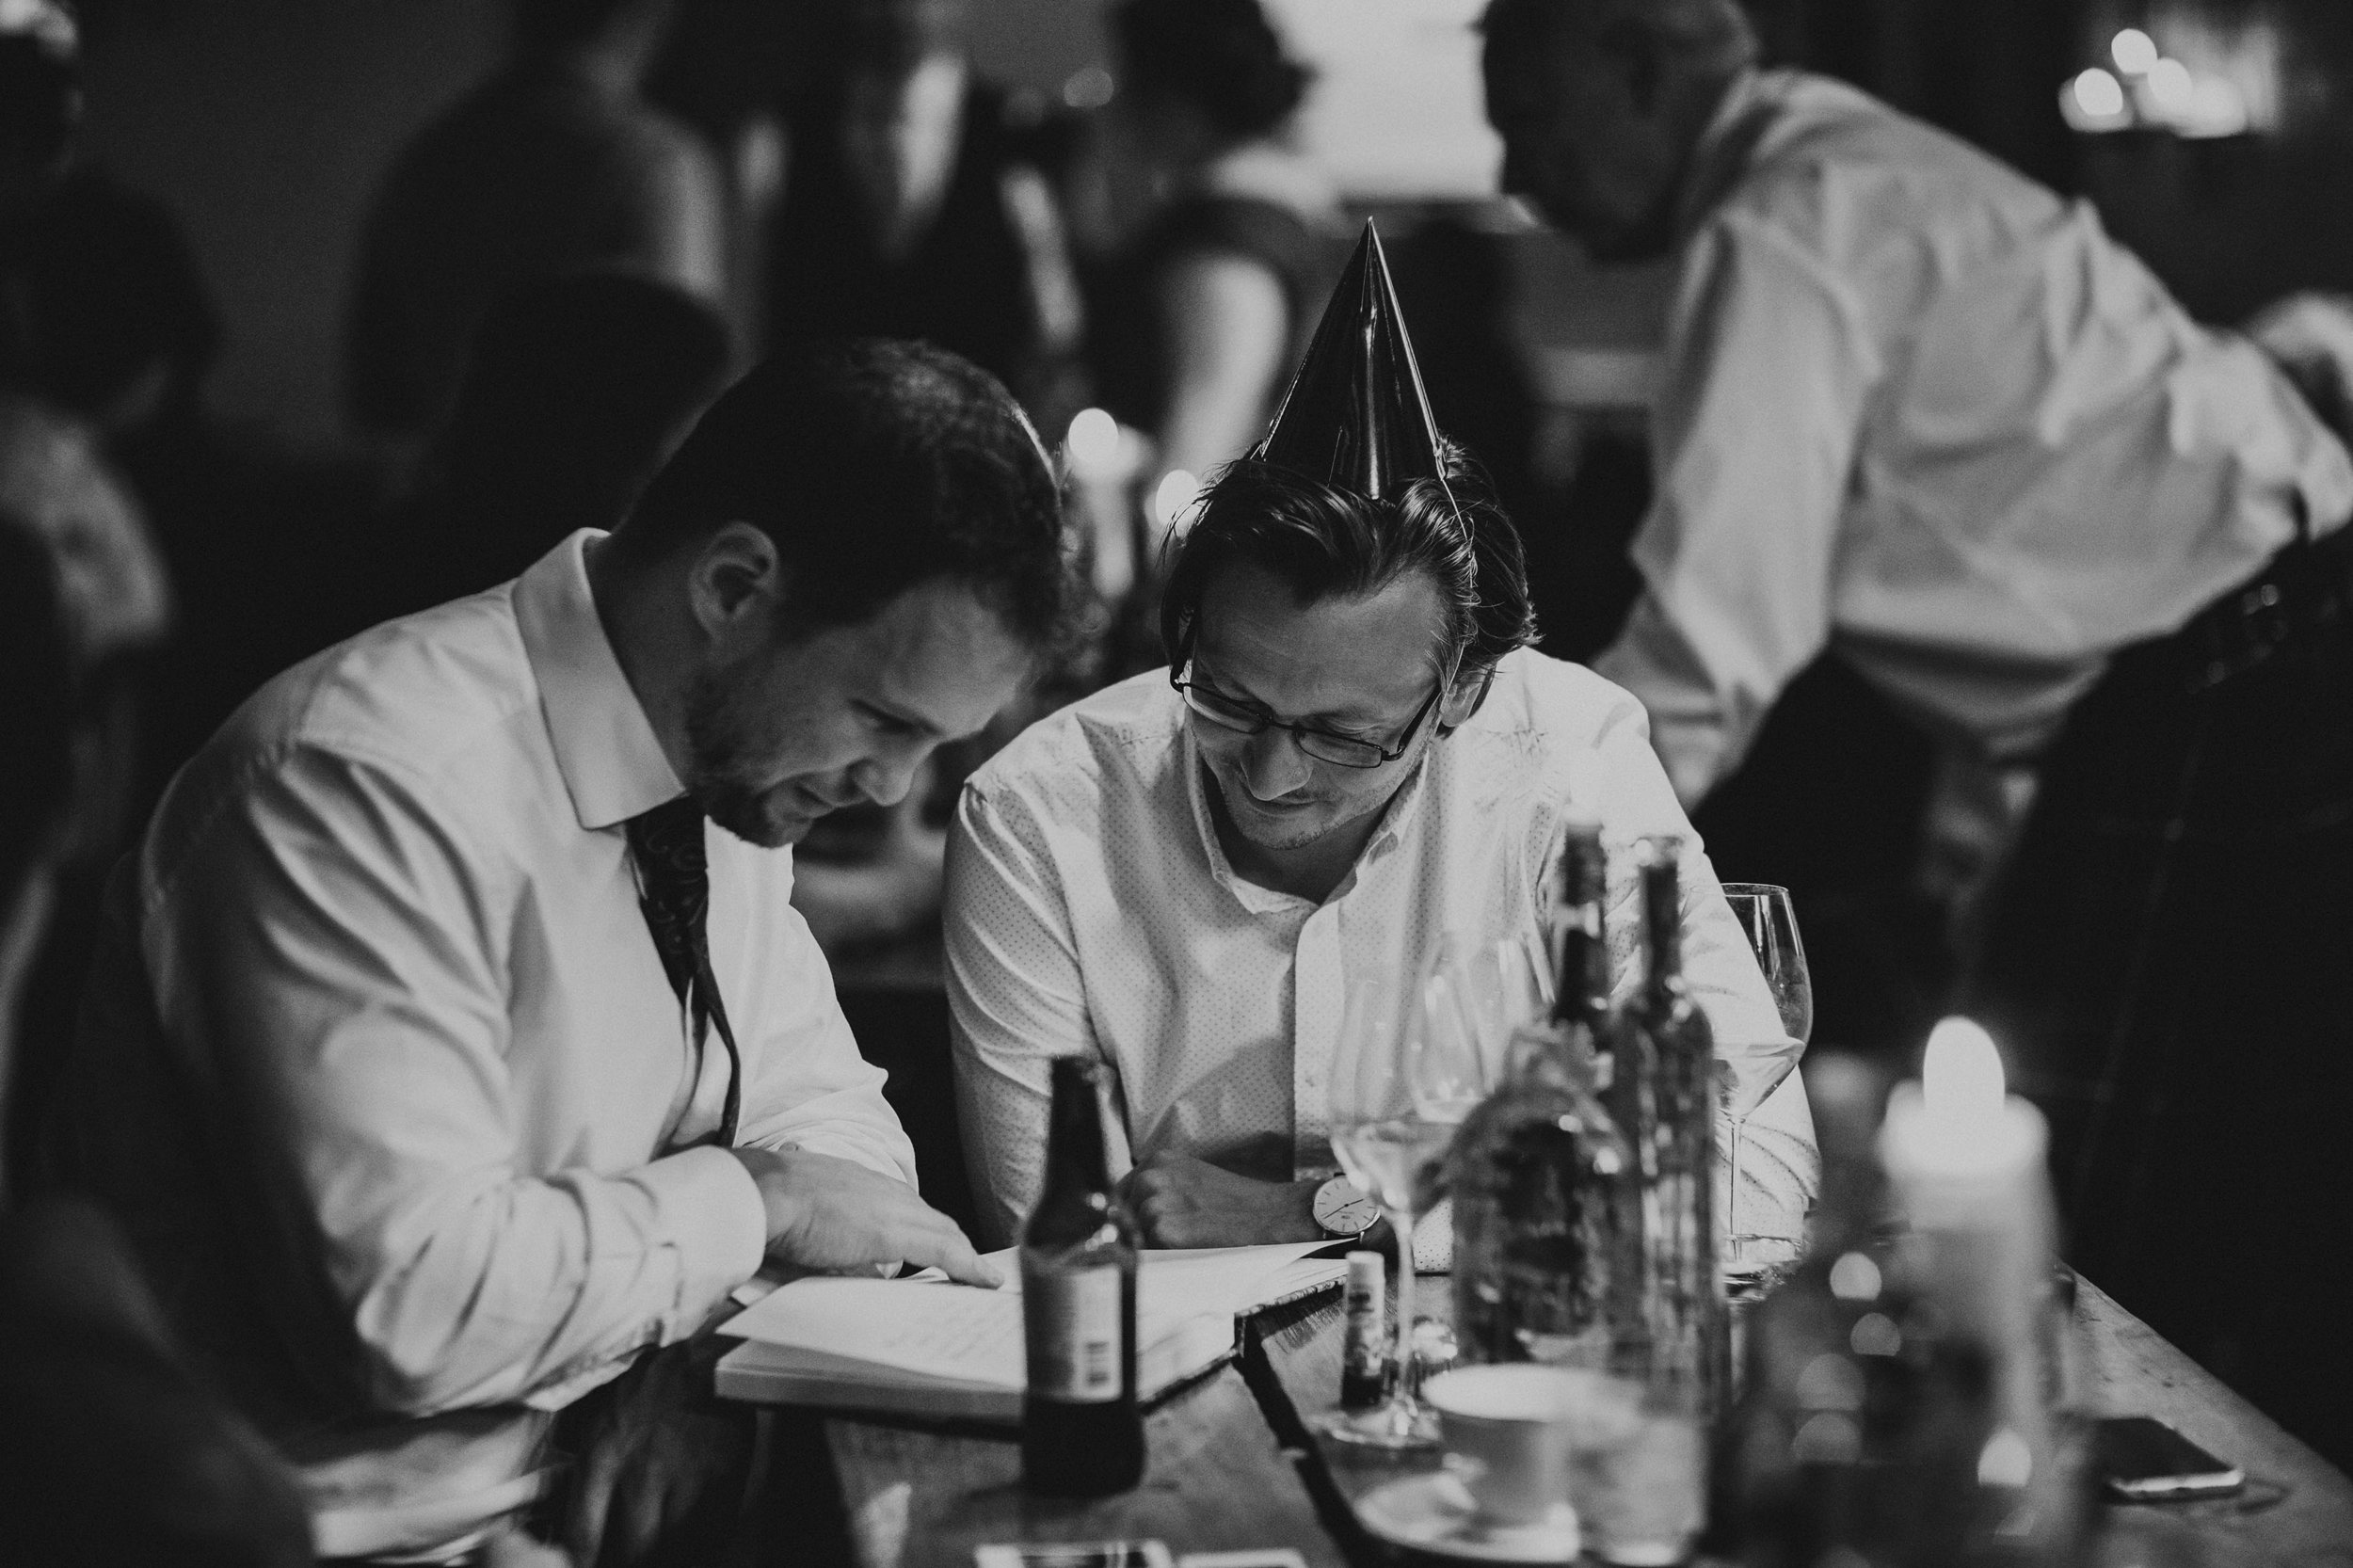 TIMBERYARD_EDINBURGH_WEDDING_PJ_PHILLIPS_PHOTOGRAPHY_193.jpg